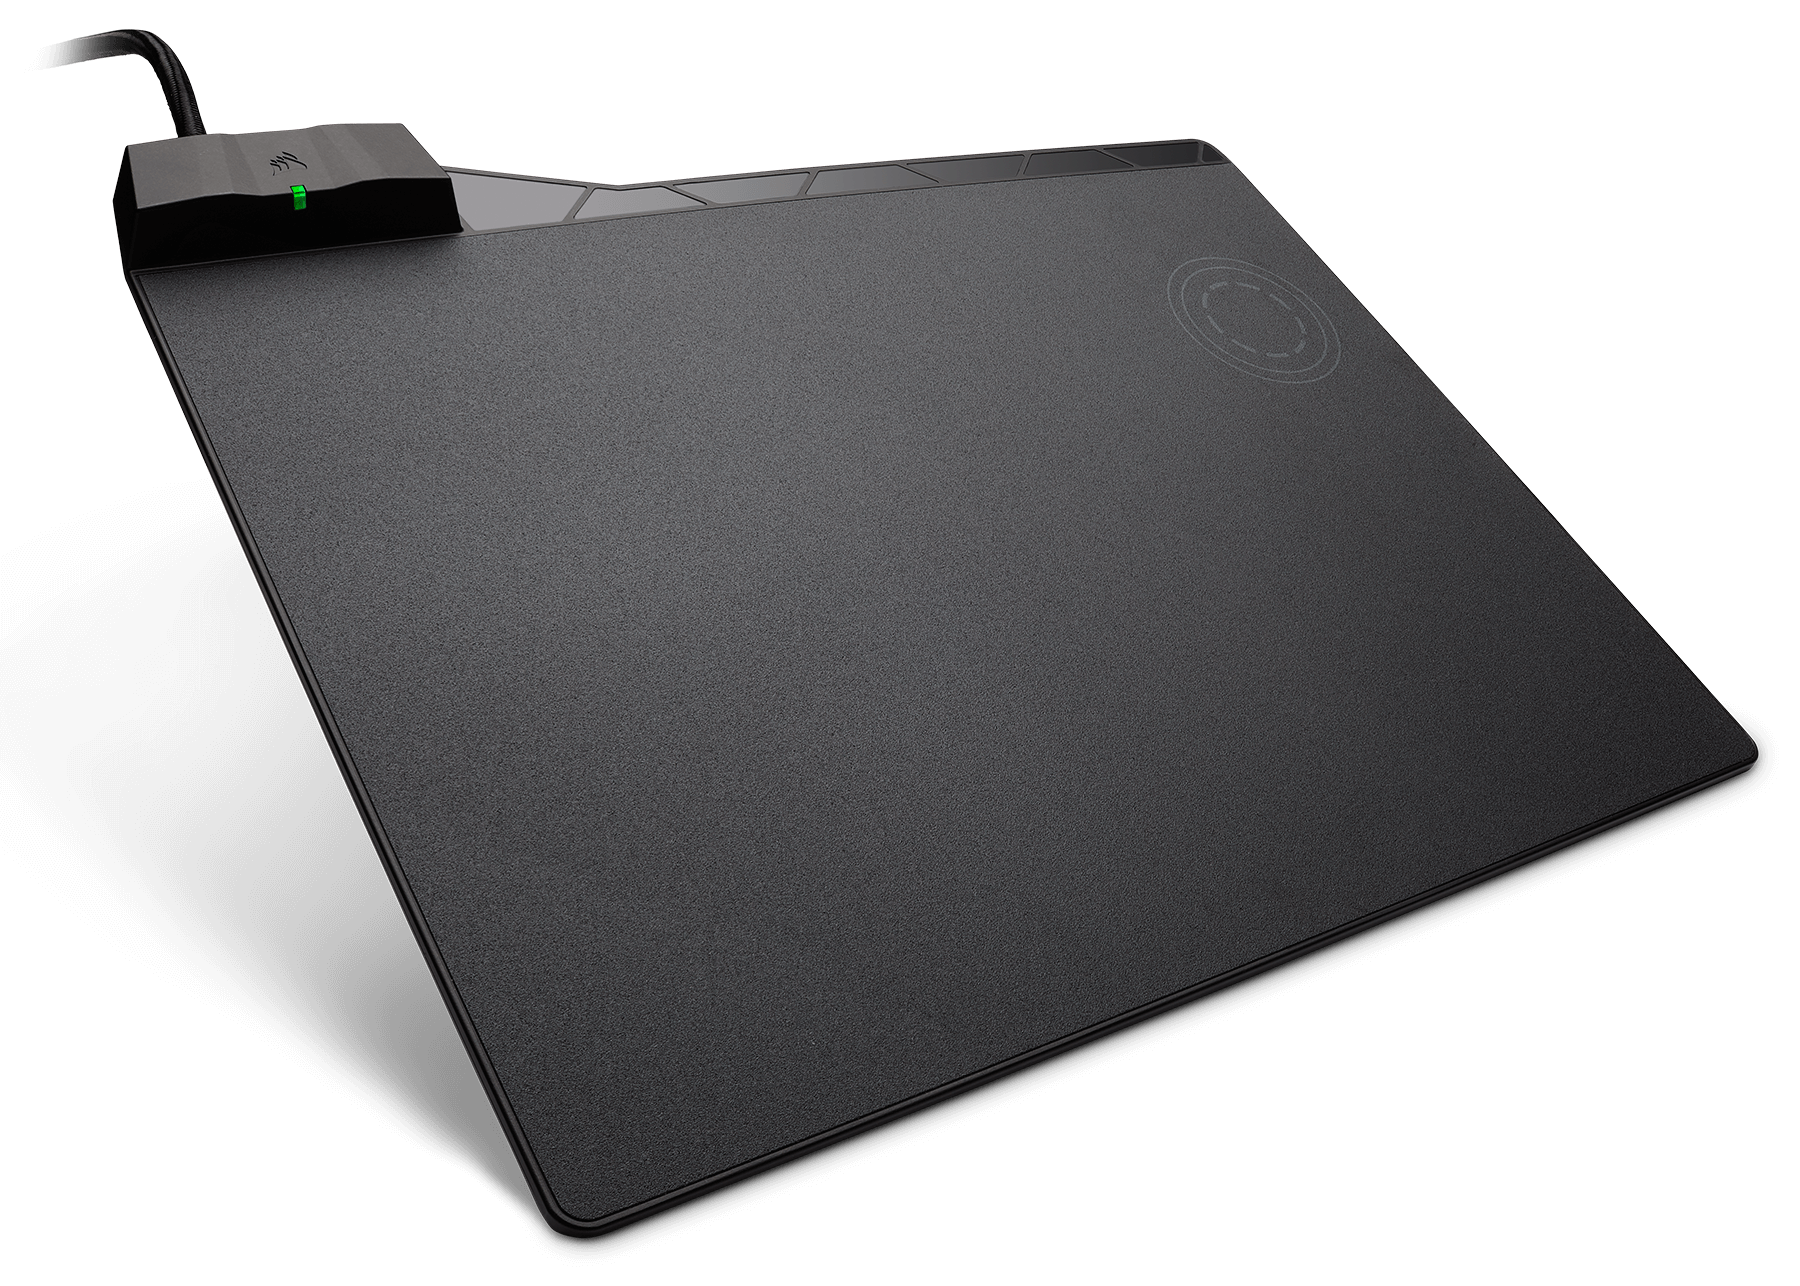 The Corsair Mm1000 Qi Wireless Charging Mouse Pad Combines Convenience Of With A Performance Micro Textured Surface